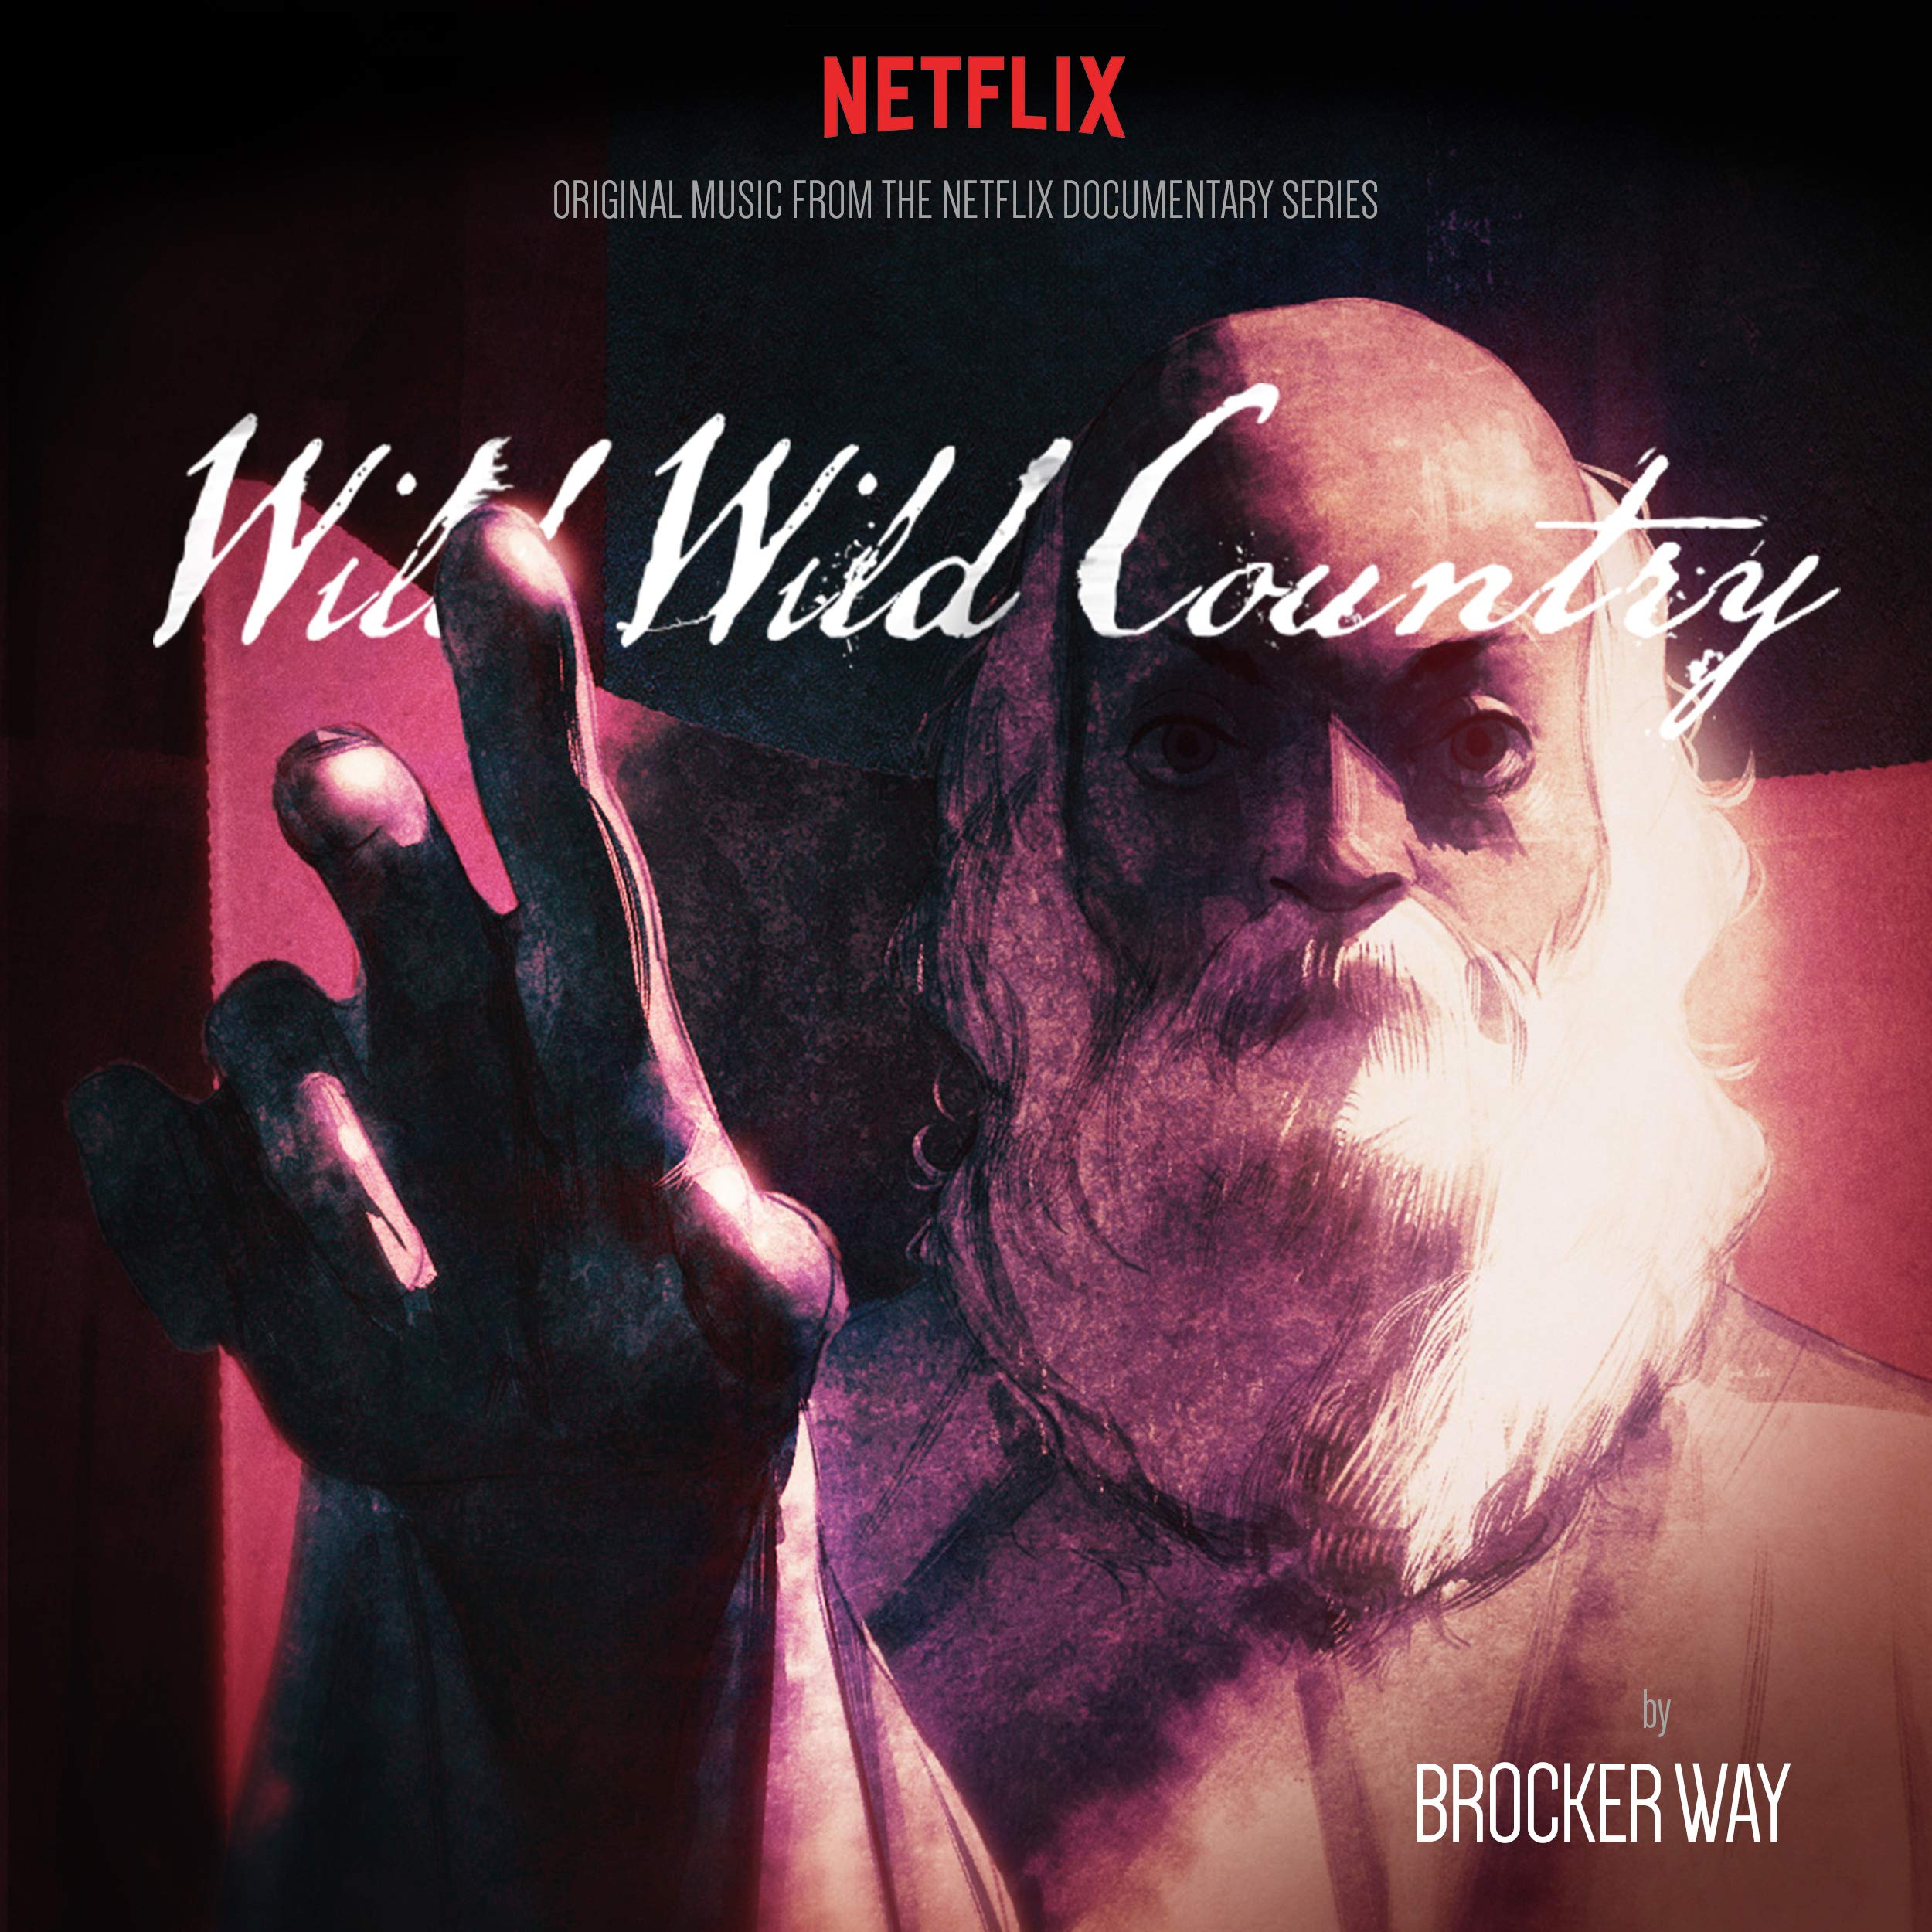 Vinilo : Brocker Way - Wild Wild Country - Original Music From Netflix (LP Vinyl)